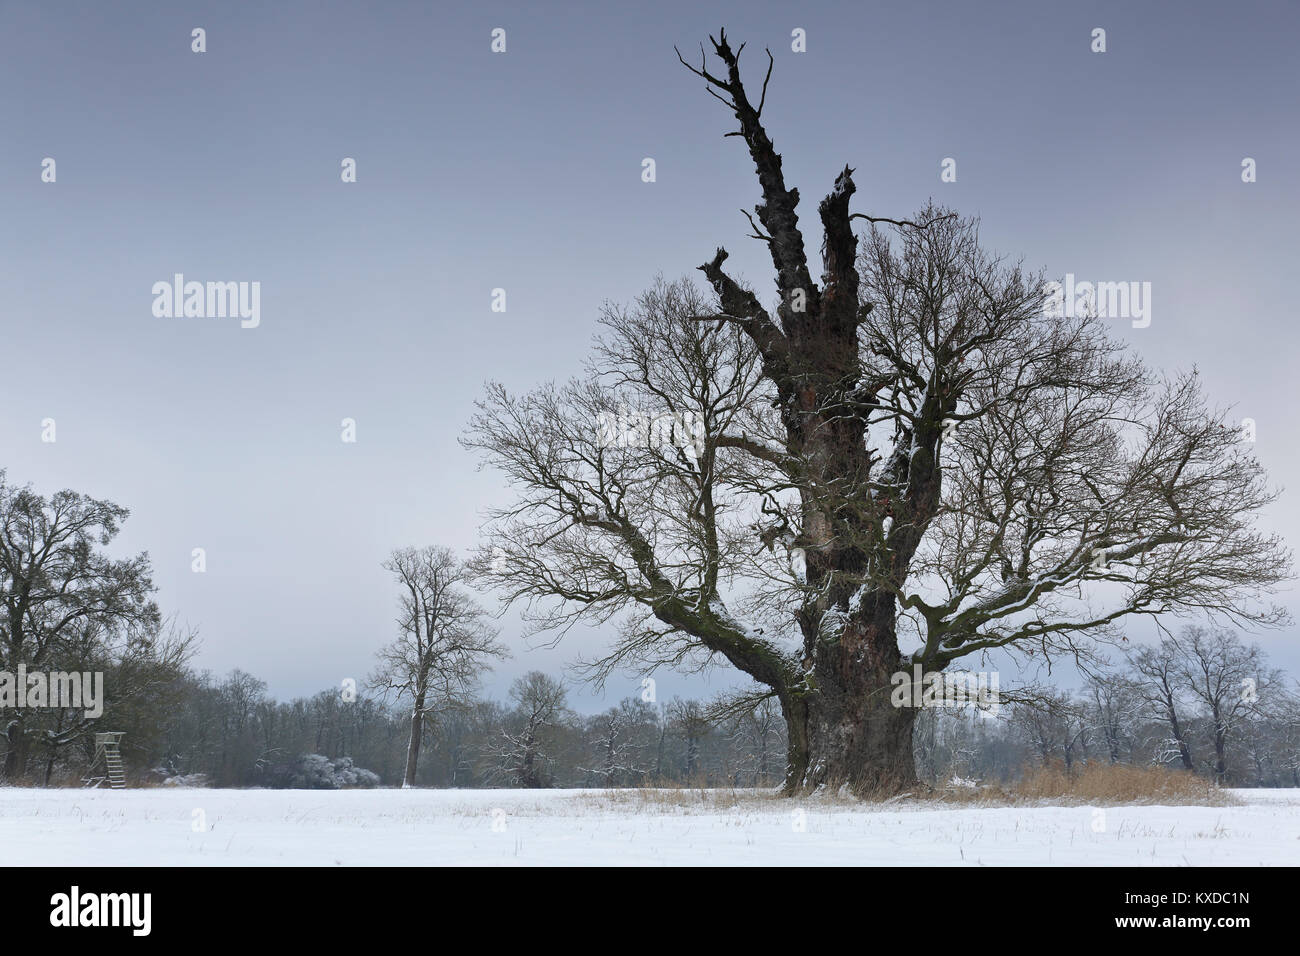 650 years old English oak (Quercus robur) in winter, solitaire tree, alluvial forest, Biosphere Reserve Middle Elbe - Stock Image